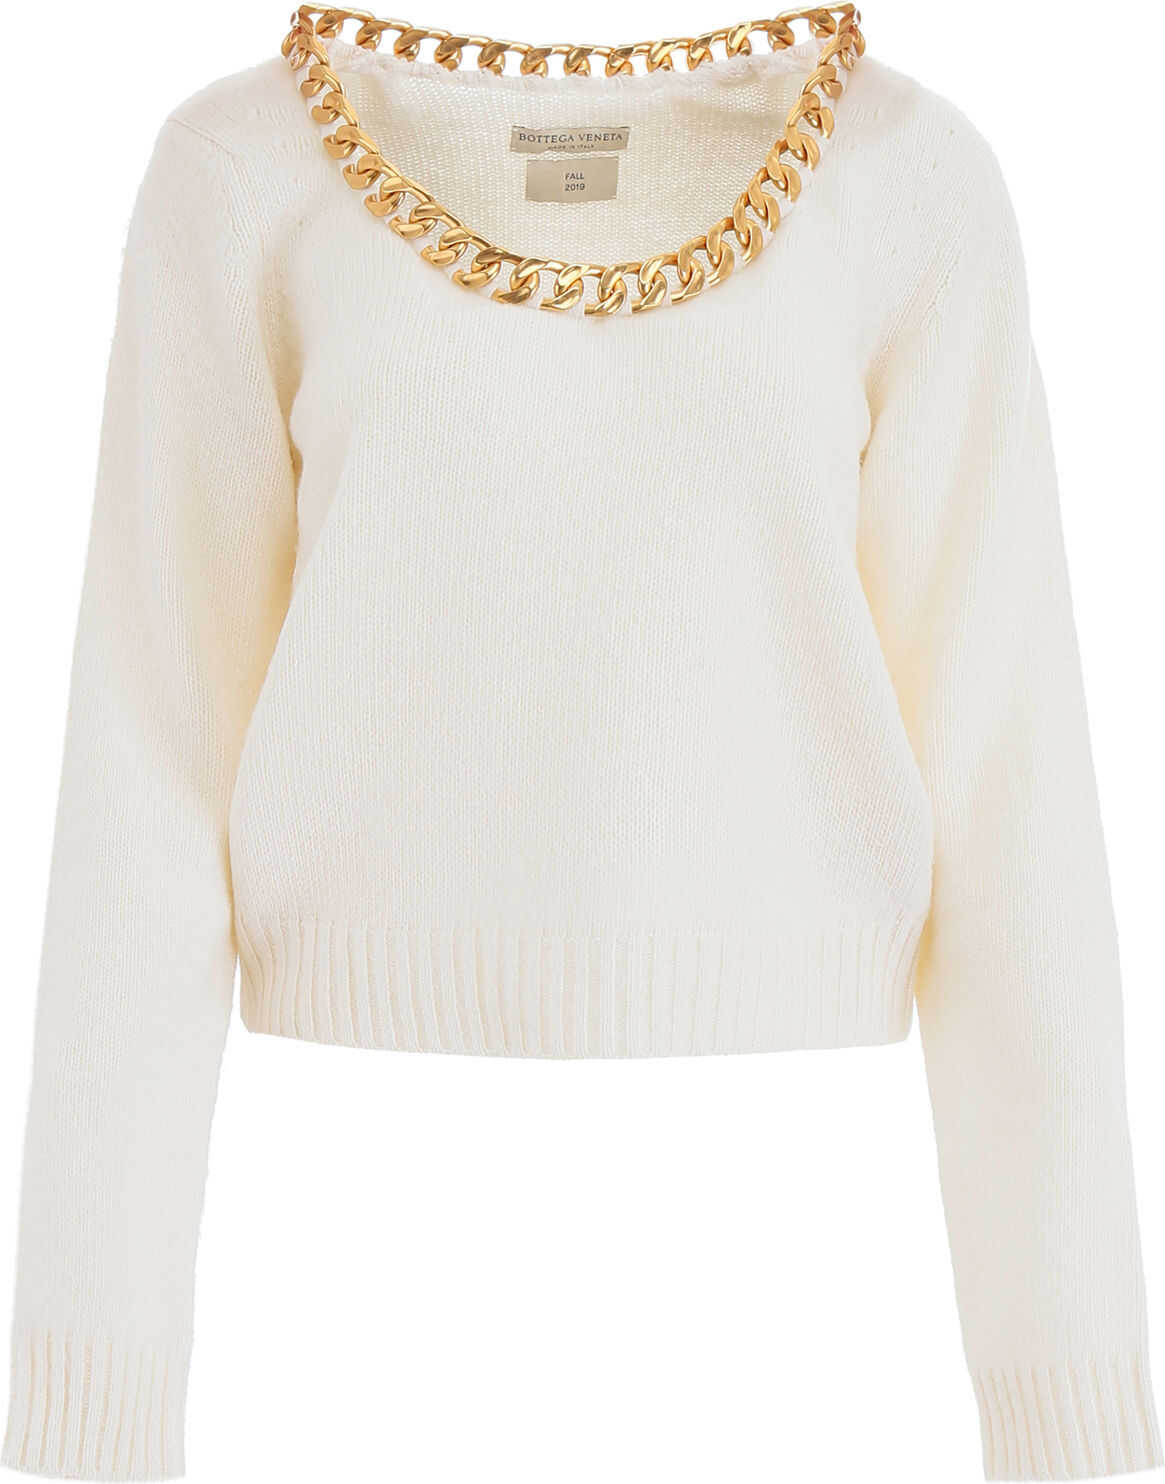 Bottega Veneta Chain Knit OFF WHITE